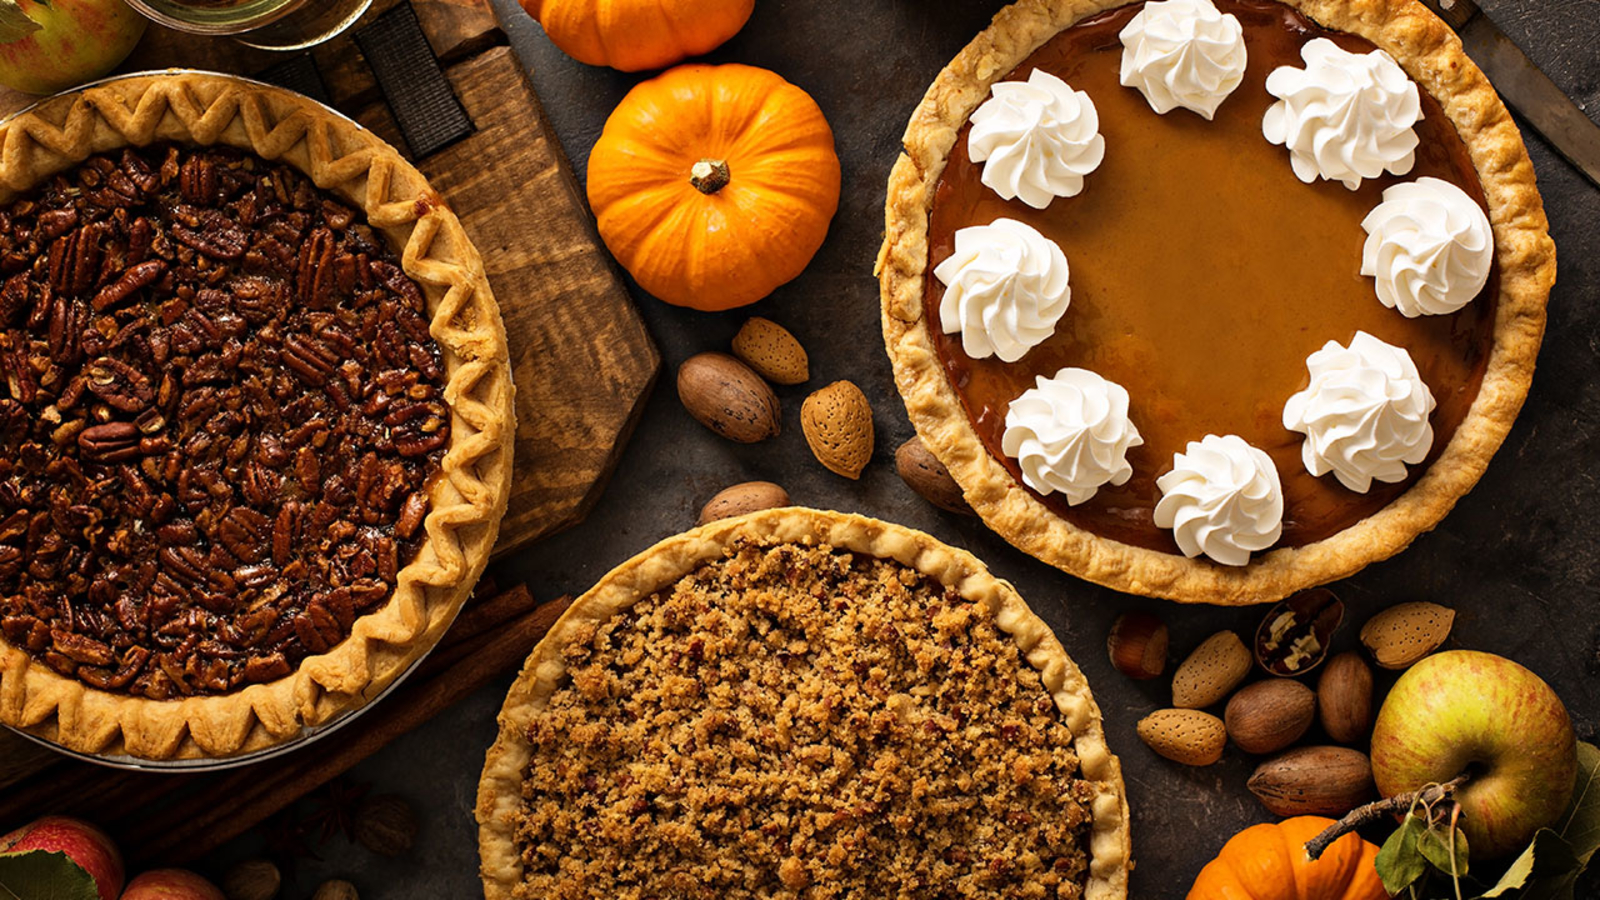 Instagram reveals top Thanksgiving pies by state - and many are scratching their heads